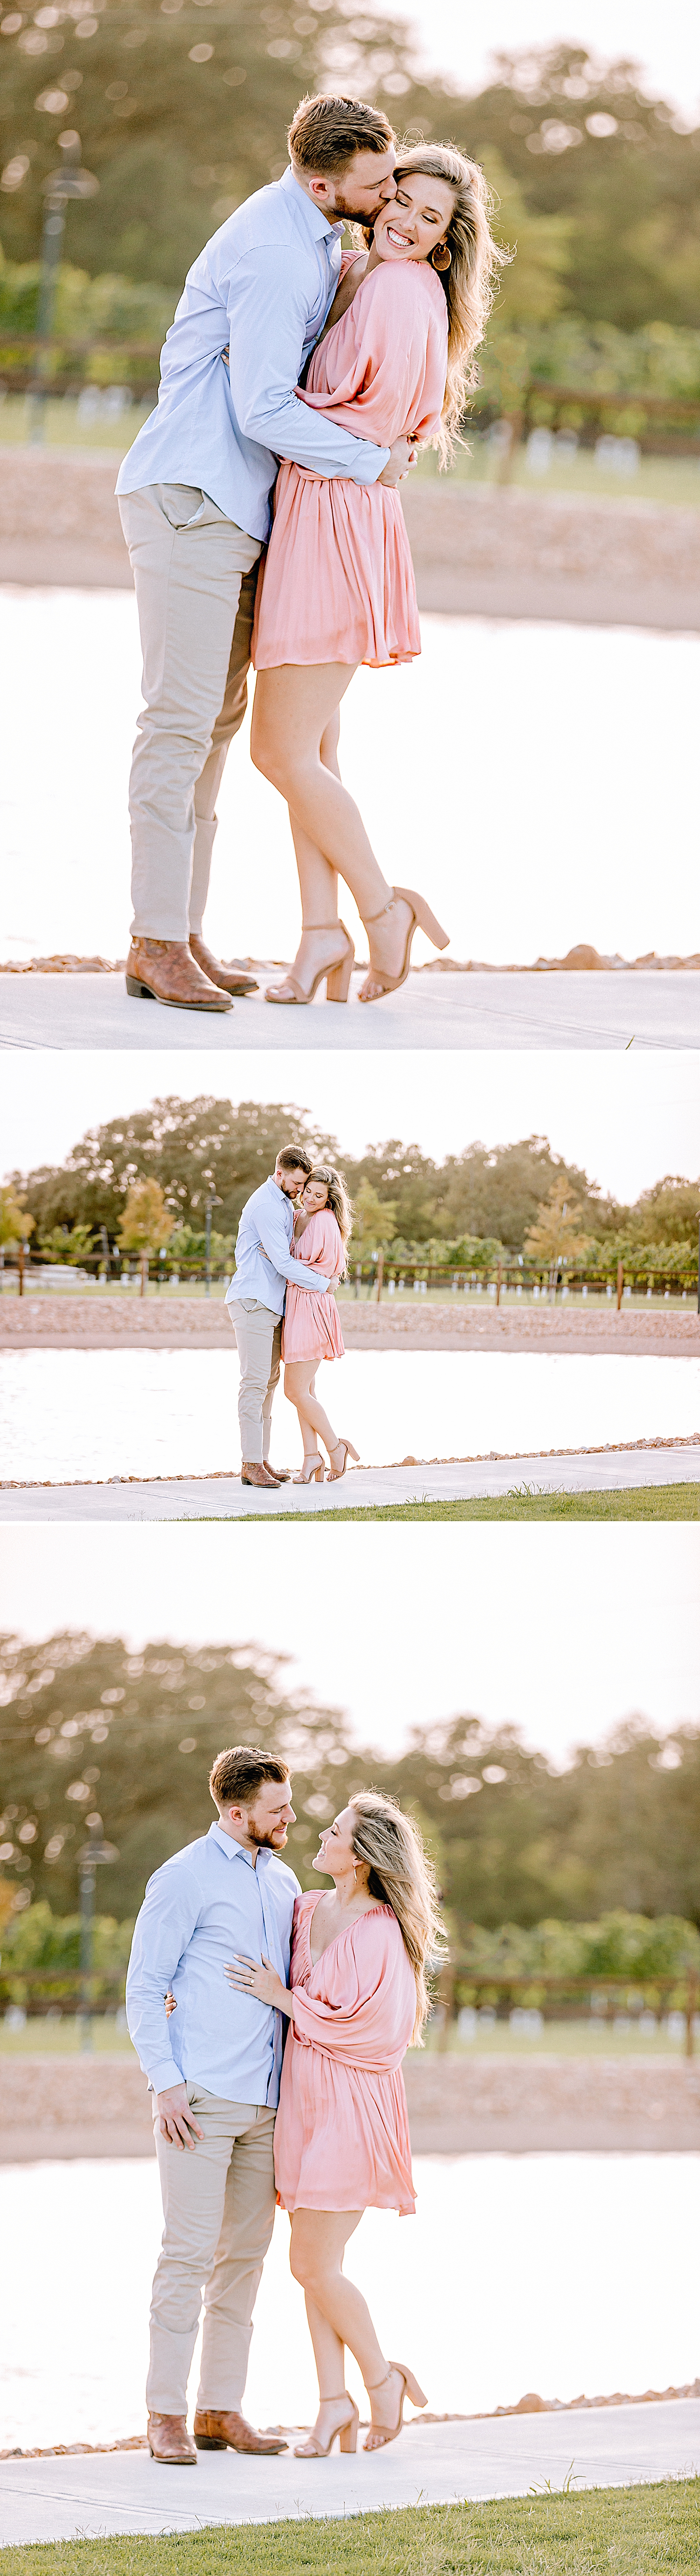 Carly-Barton-Photography-Engagement-Photos-College-Station-Texas-The-Weinberg-at-Wixon-Valley_0009.jpg